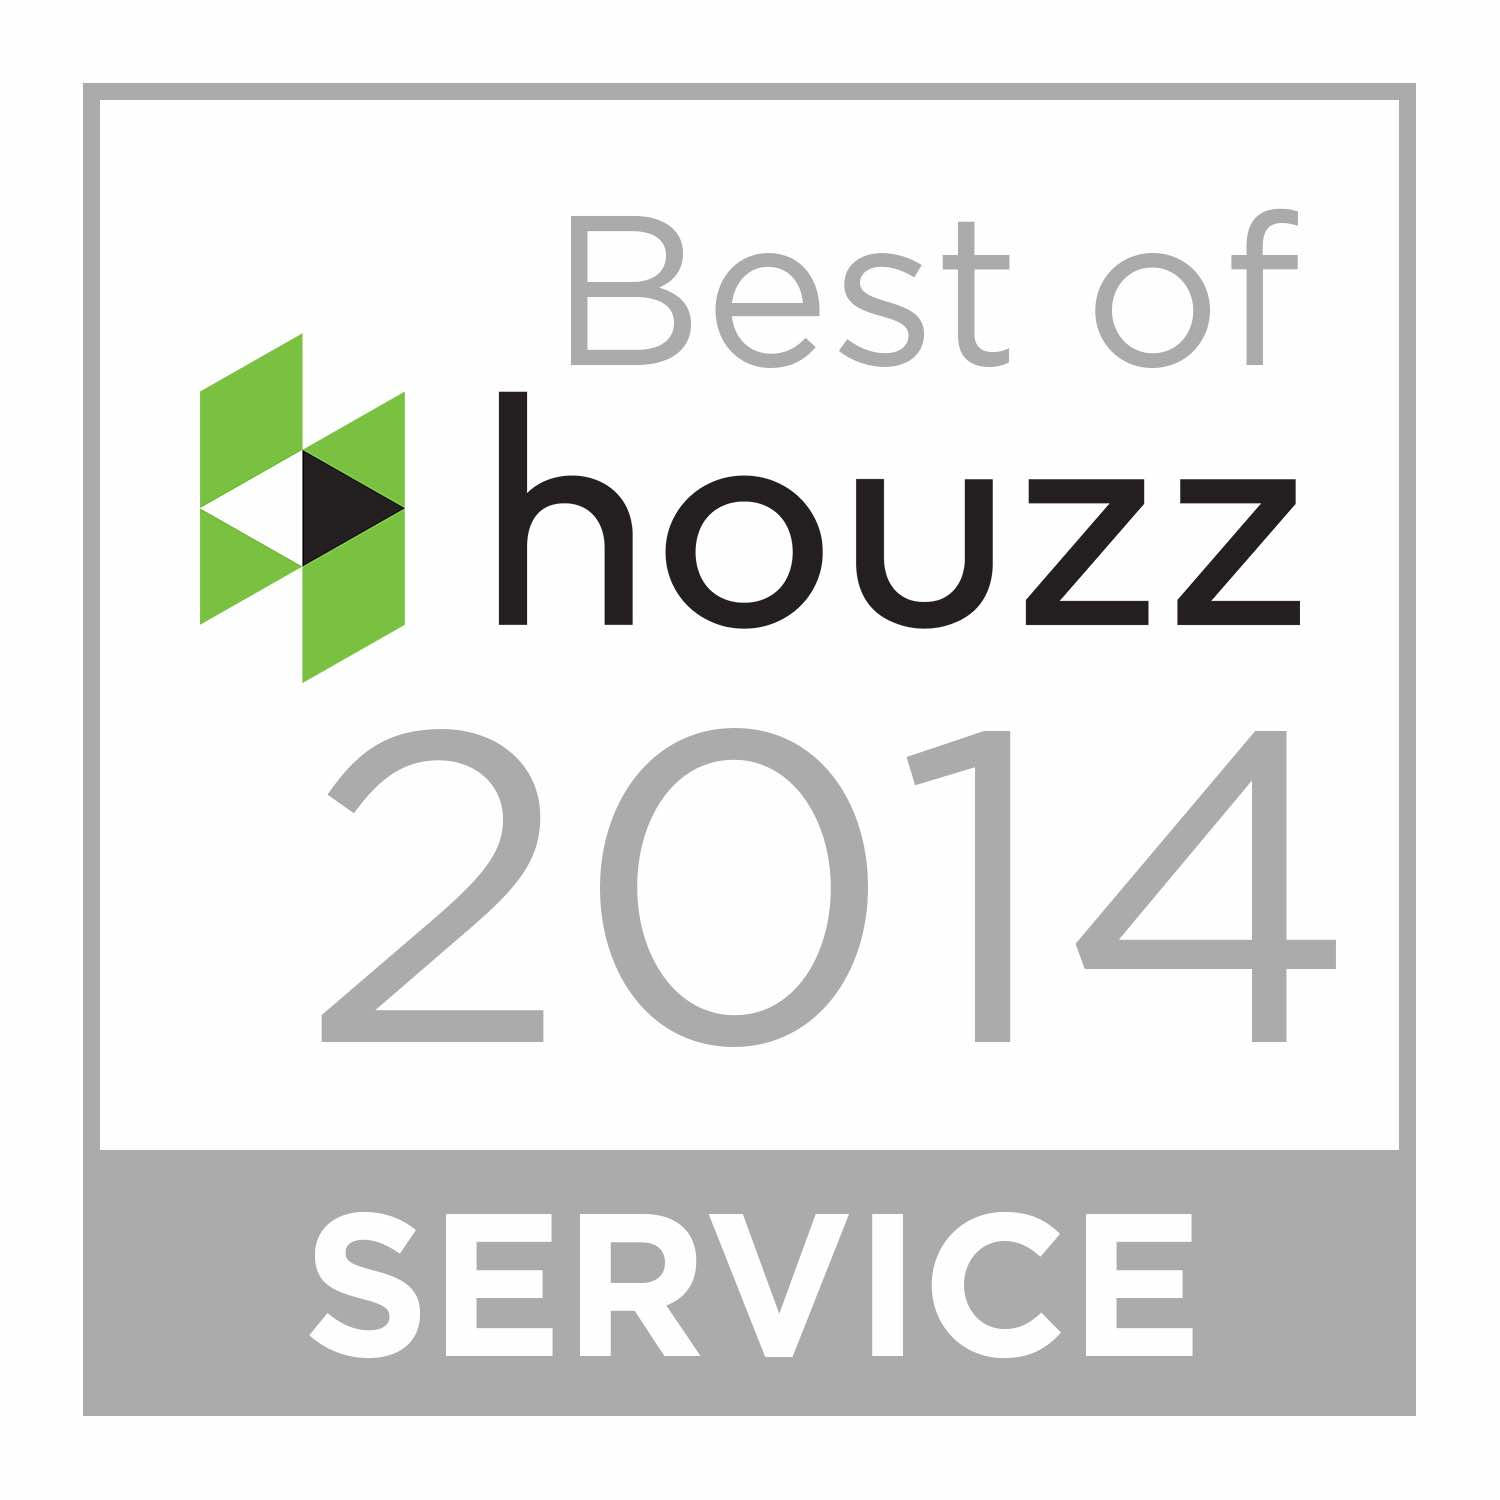 Wine Cellar Specialists won Best of Houzz in 2014 for service to their customers.